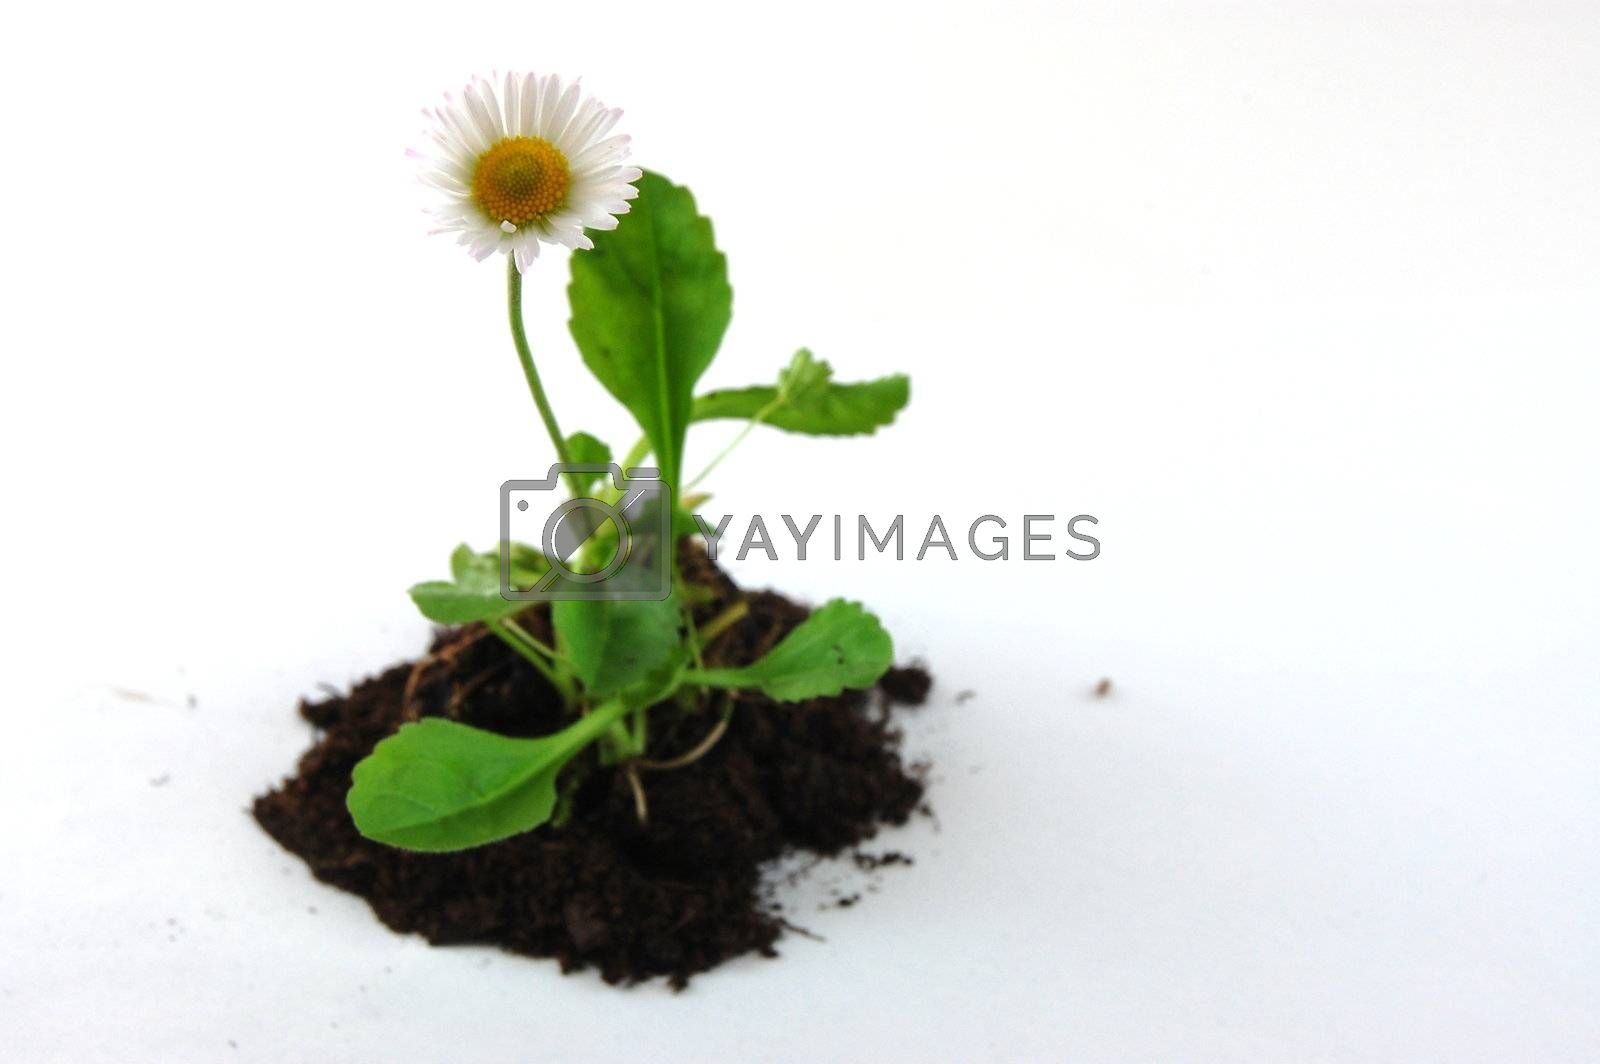 Plant and soil isolated on a white background.